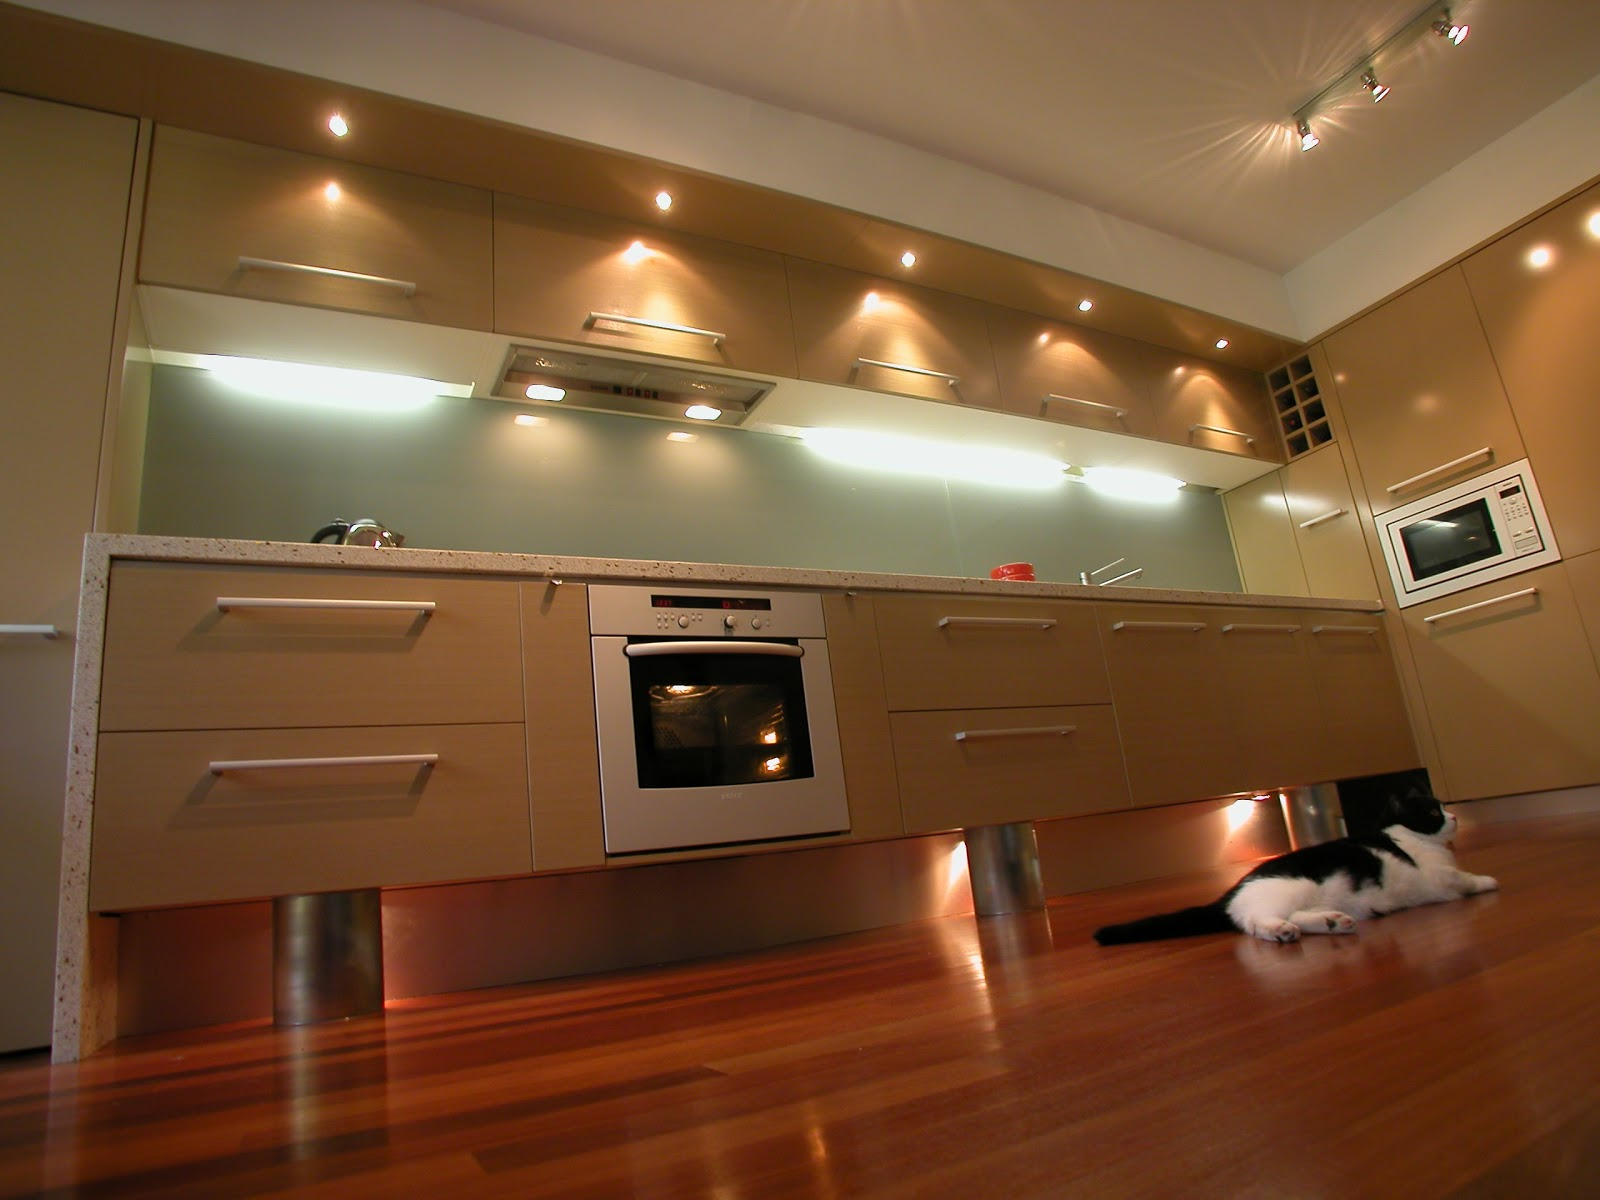 Outstanding Commercial Galley Kitchen Design 1600 x 1200 · 166 kB · jpeg